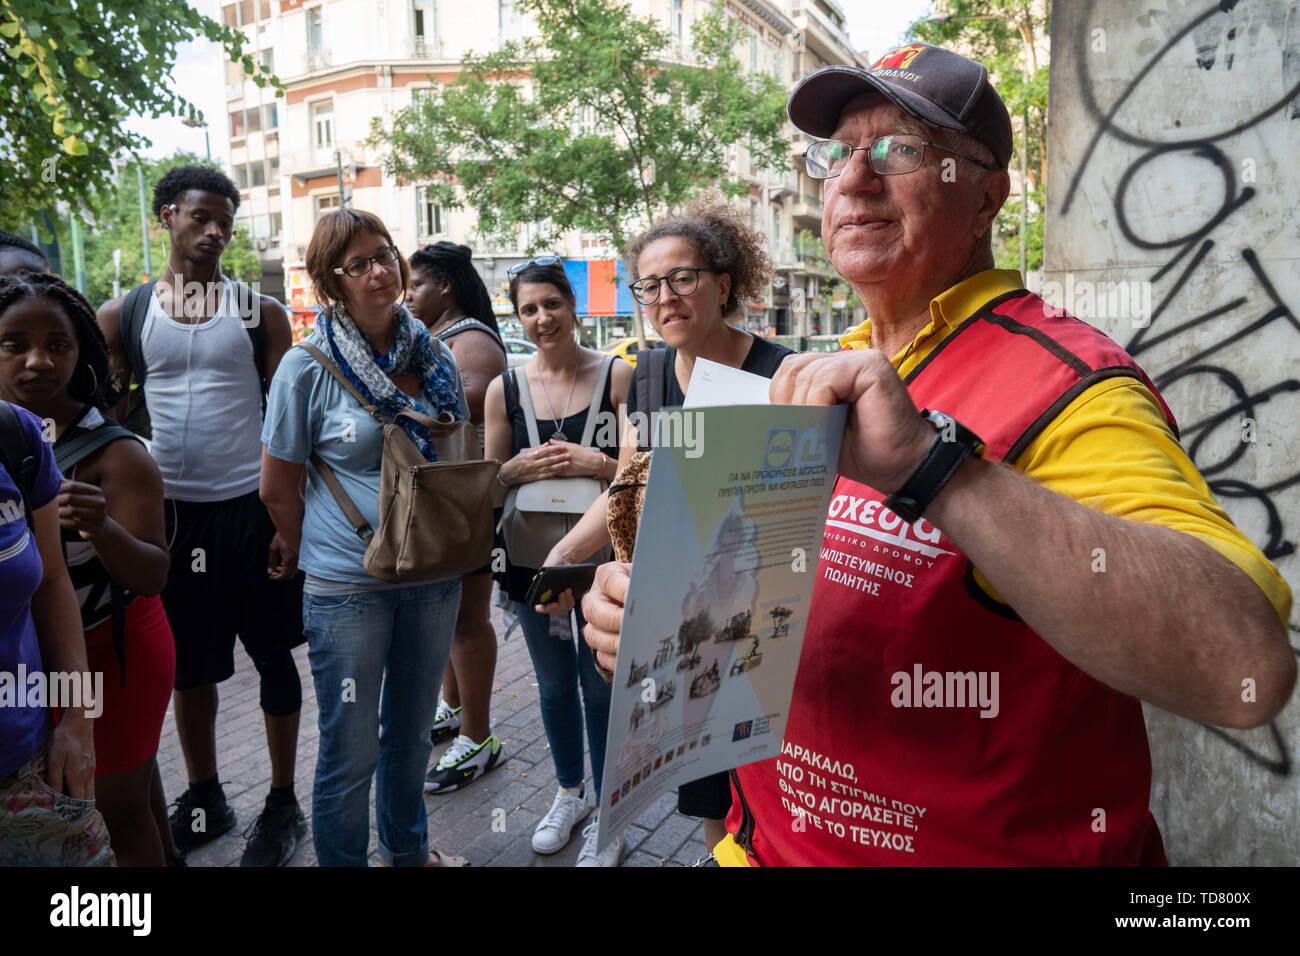 Athens, Athens, Greece. 12th June, 2019. Michael, 72, one of Shedia's street vendors, shows a copy of Shedia to participants of the Invisible Tour.The tour of ''˜Invisible Athens' is organized by Shedia and goes into the parts of Athens that locals consider to be dangerous areas of the city and are generally avoided by tourists. Shedia is the only Greek street newspaper. The tour involves showing the conditions of homelessness in Athens. The Greek Ministry of Social Solidarity estimated that there were more than 1500 homeless people on the streets of Athens in 2018. (Credit Image: © Lexie - Stock Image